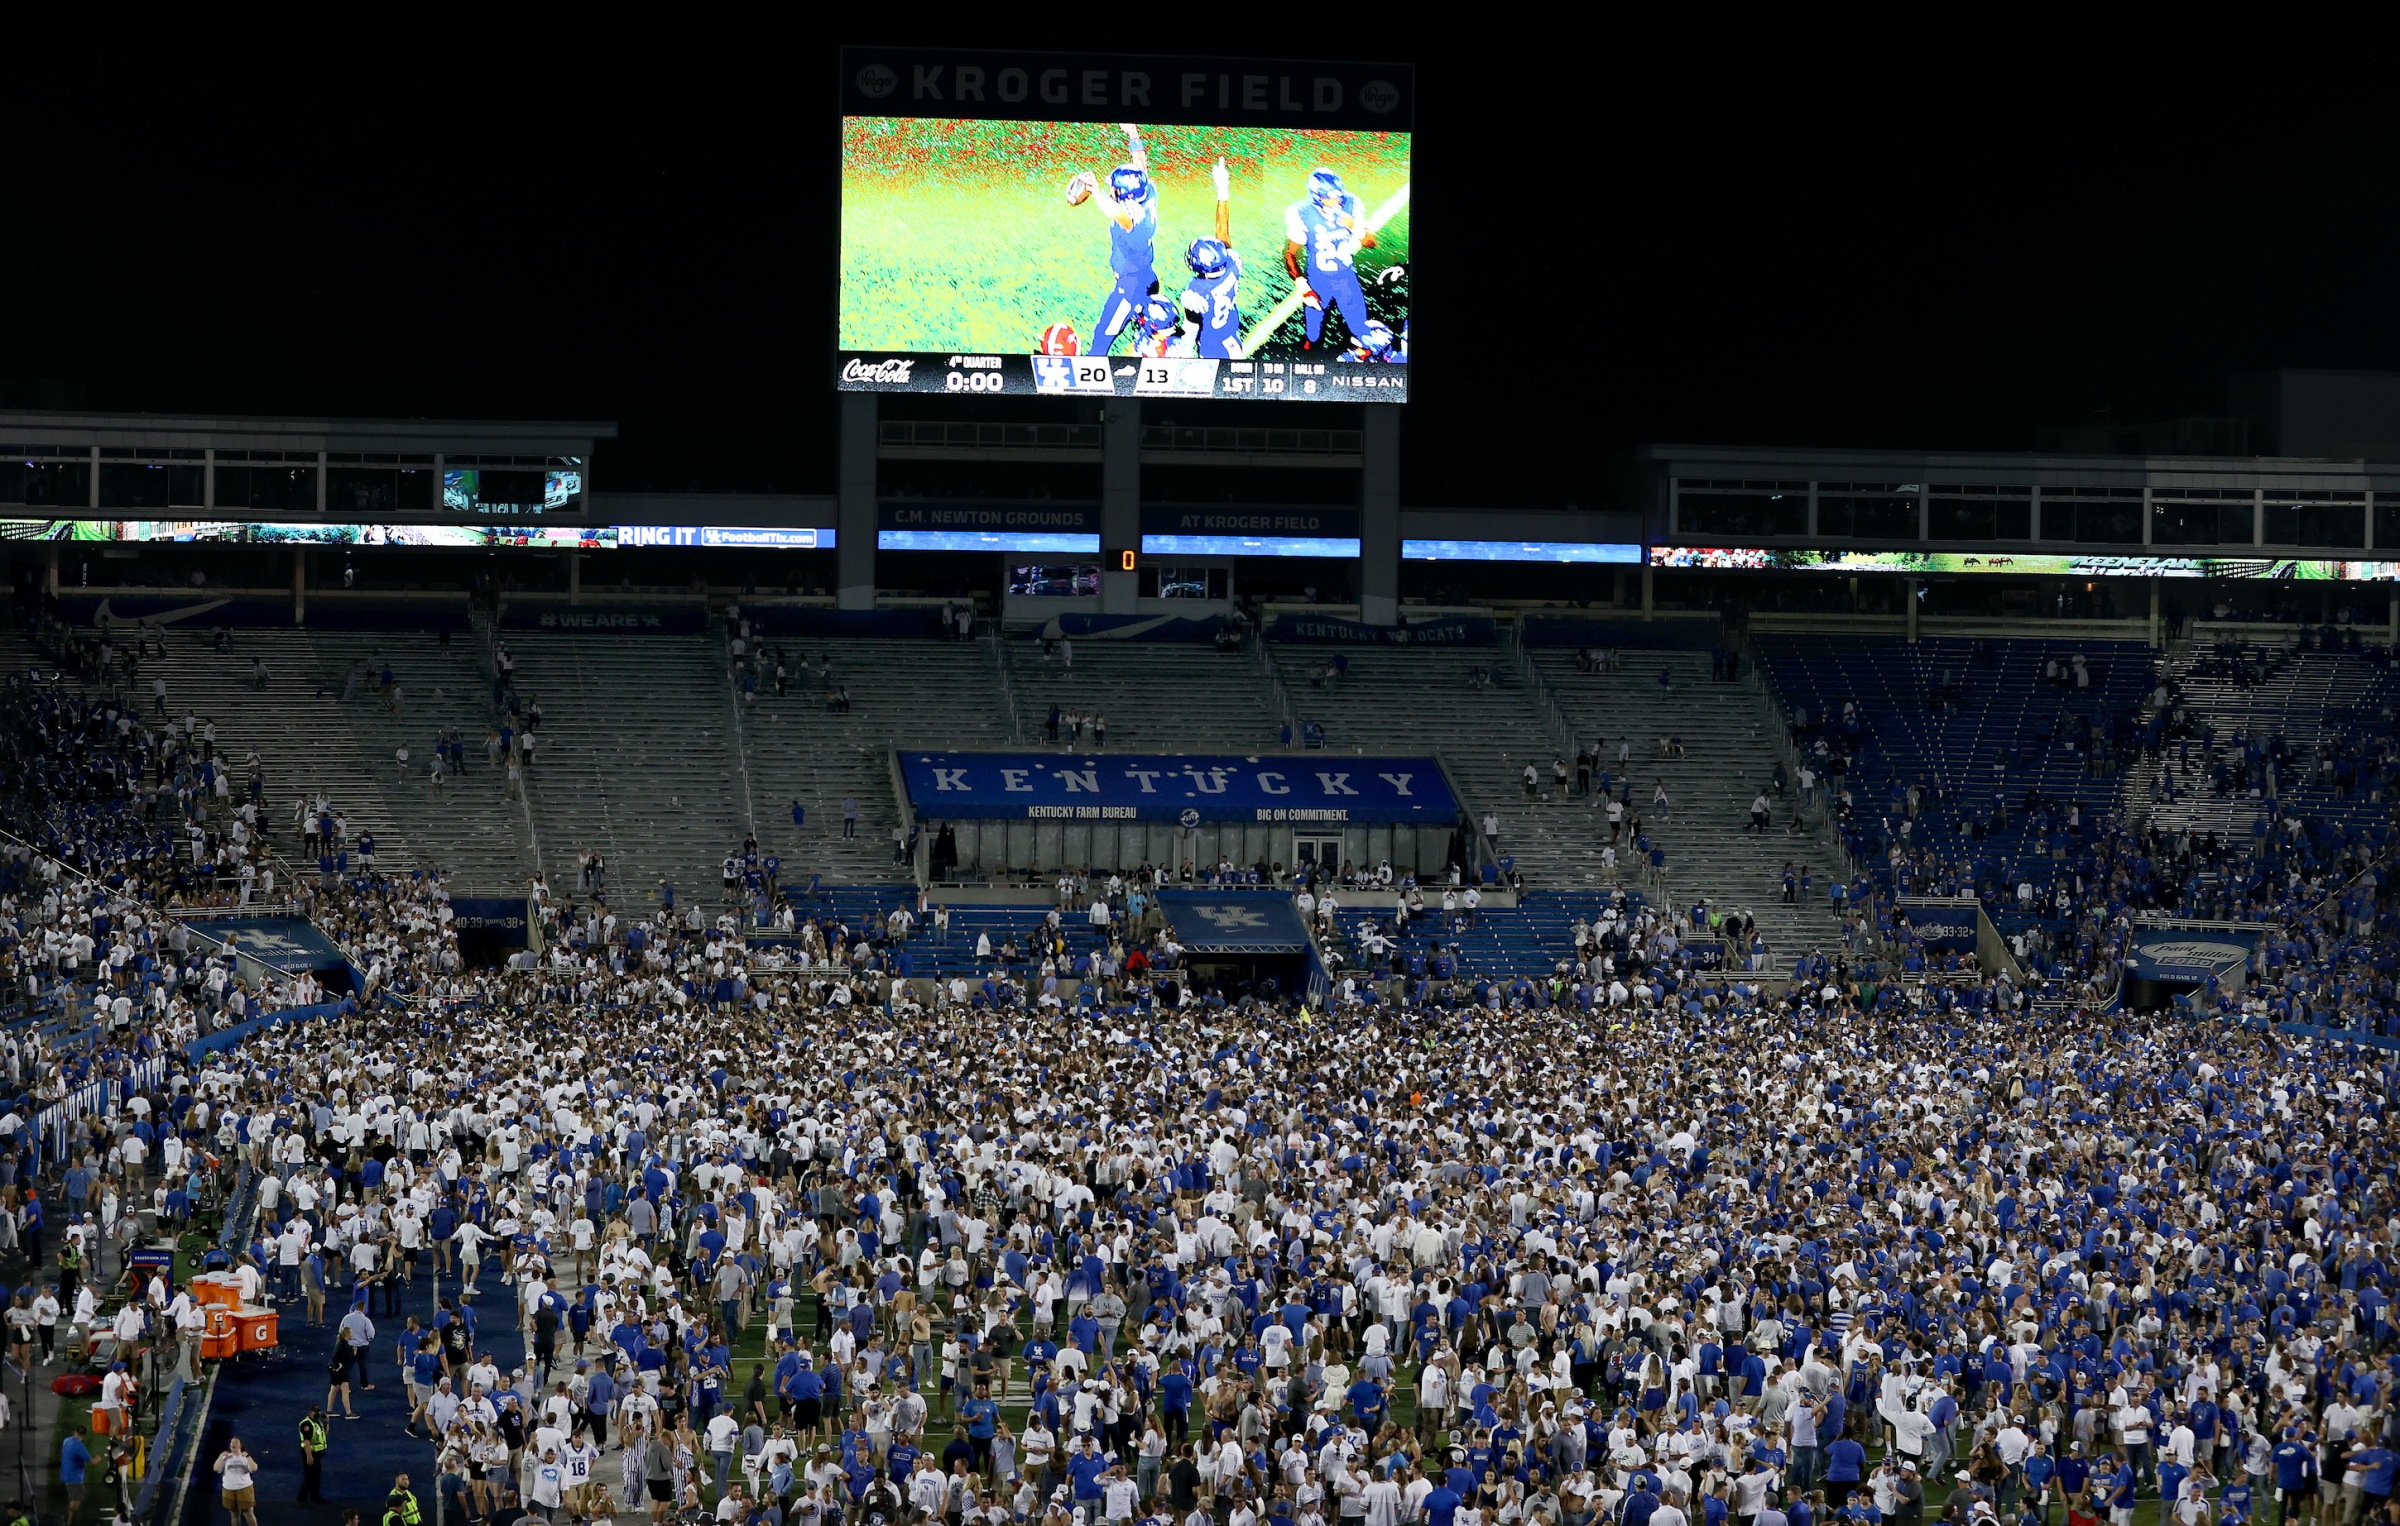 The Kentucky Wildcats fans celebrate on the field after the 20-13 win against the Florida Gators at Kroger Field on October 02, 2021 in Lexington, Kentucky.